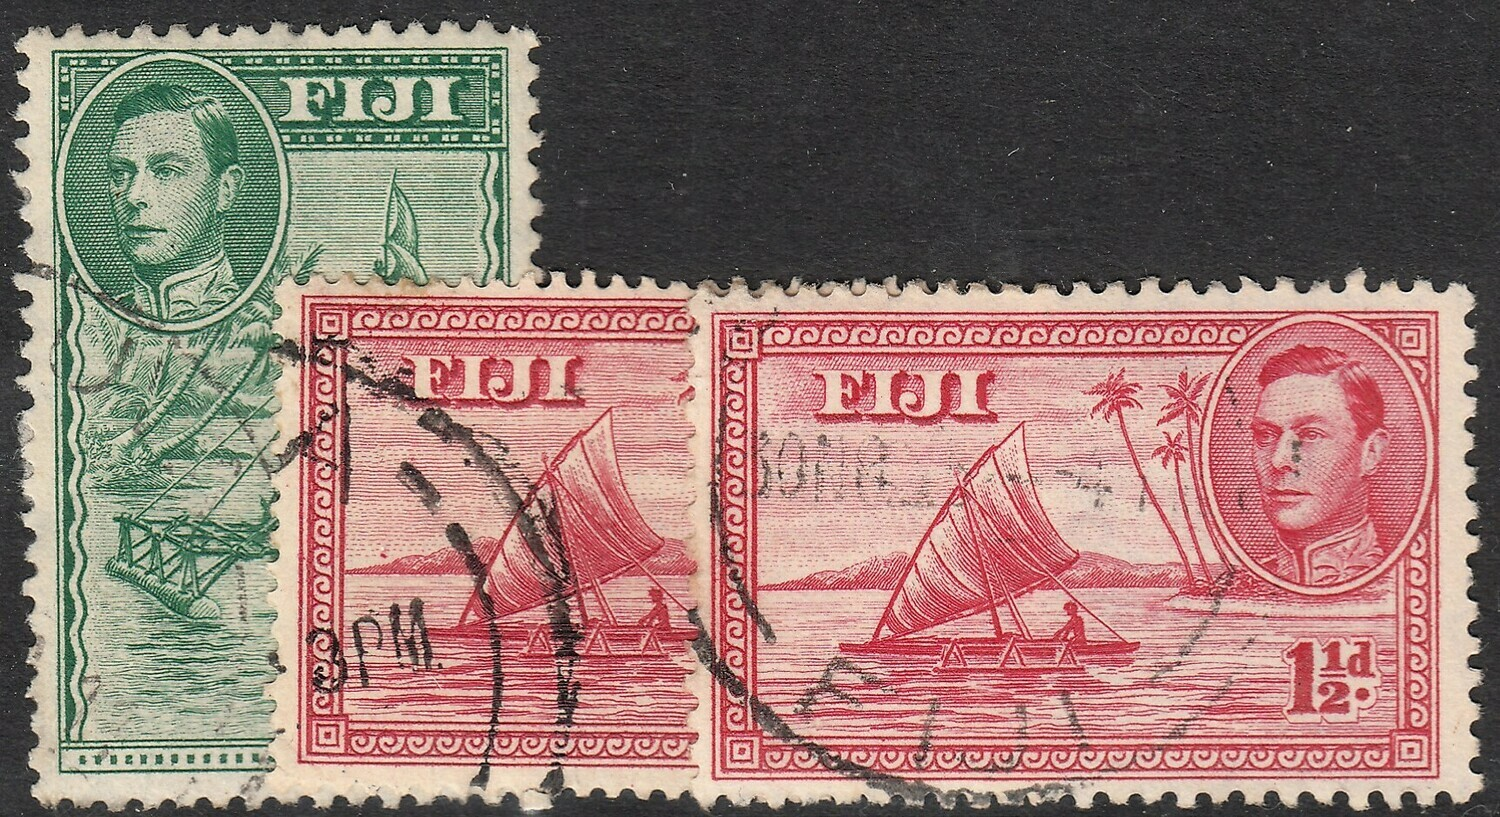 Fiji 1938 KGVI ½d and 1½d Perf Variations Used